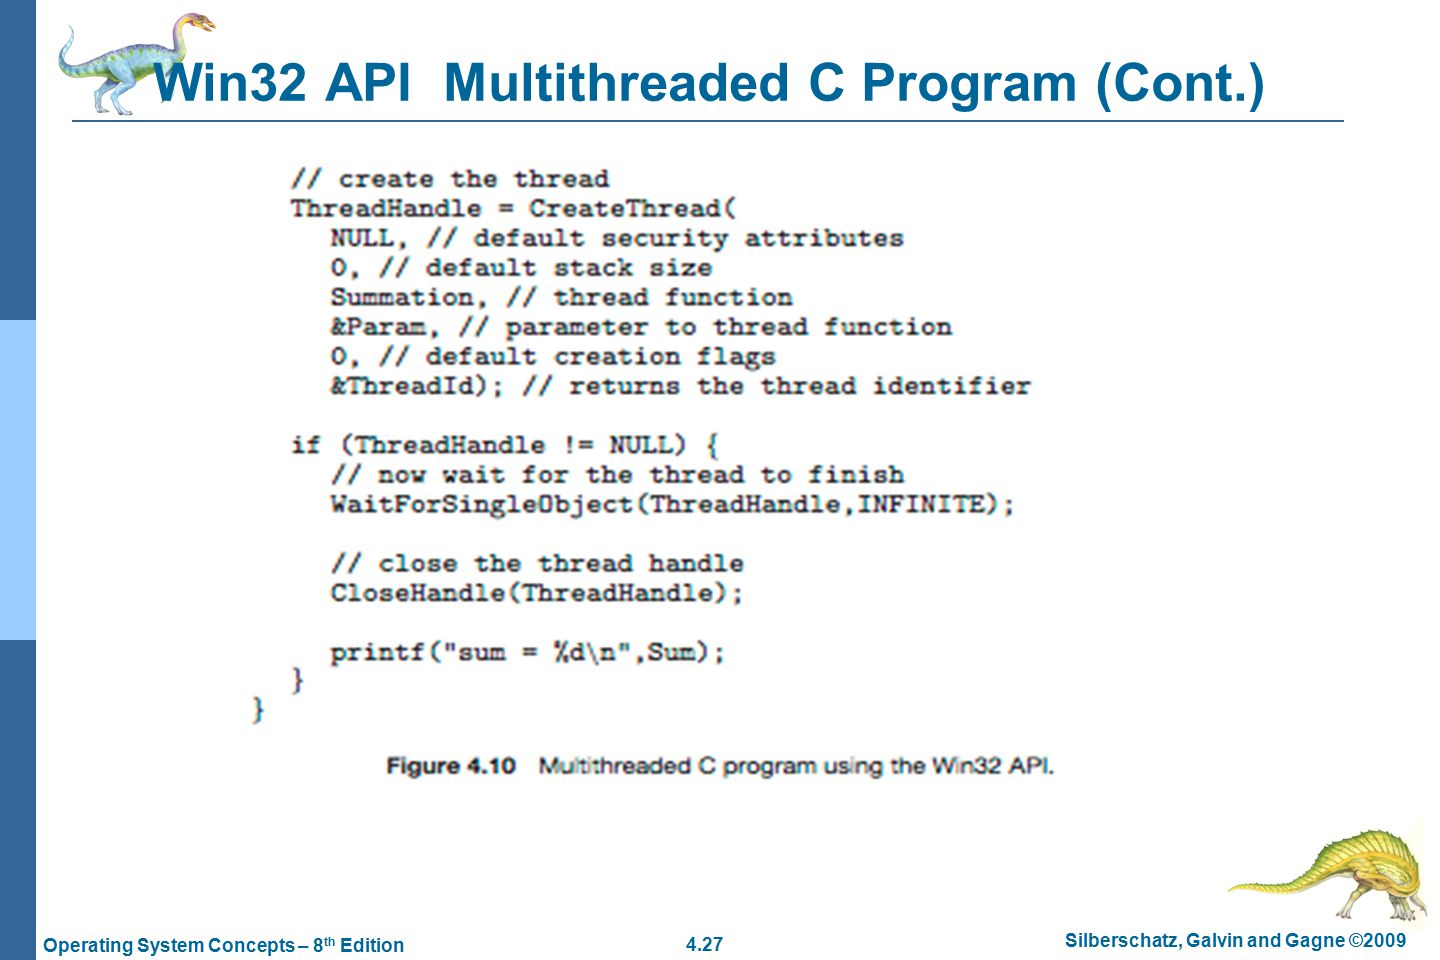 4.27 Silberschatz, Galvin and Gagne ©2009 Operating System Concepts – 8 th Edition Win32 API Multithreaded C Program (Cont.)